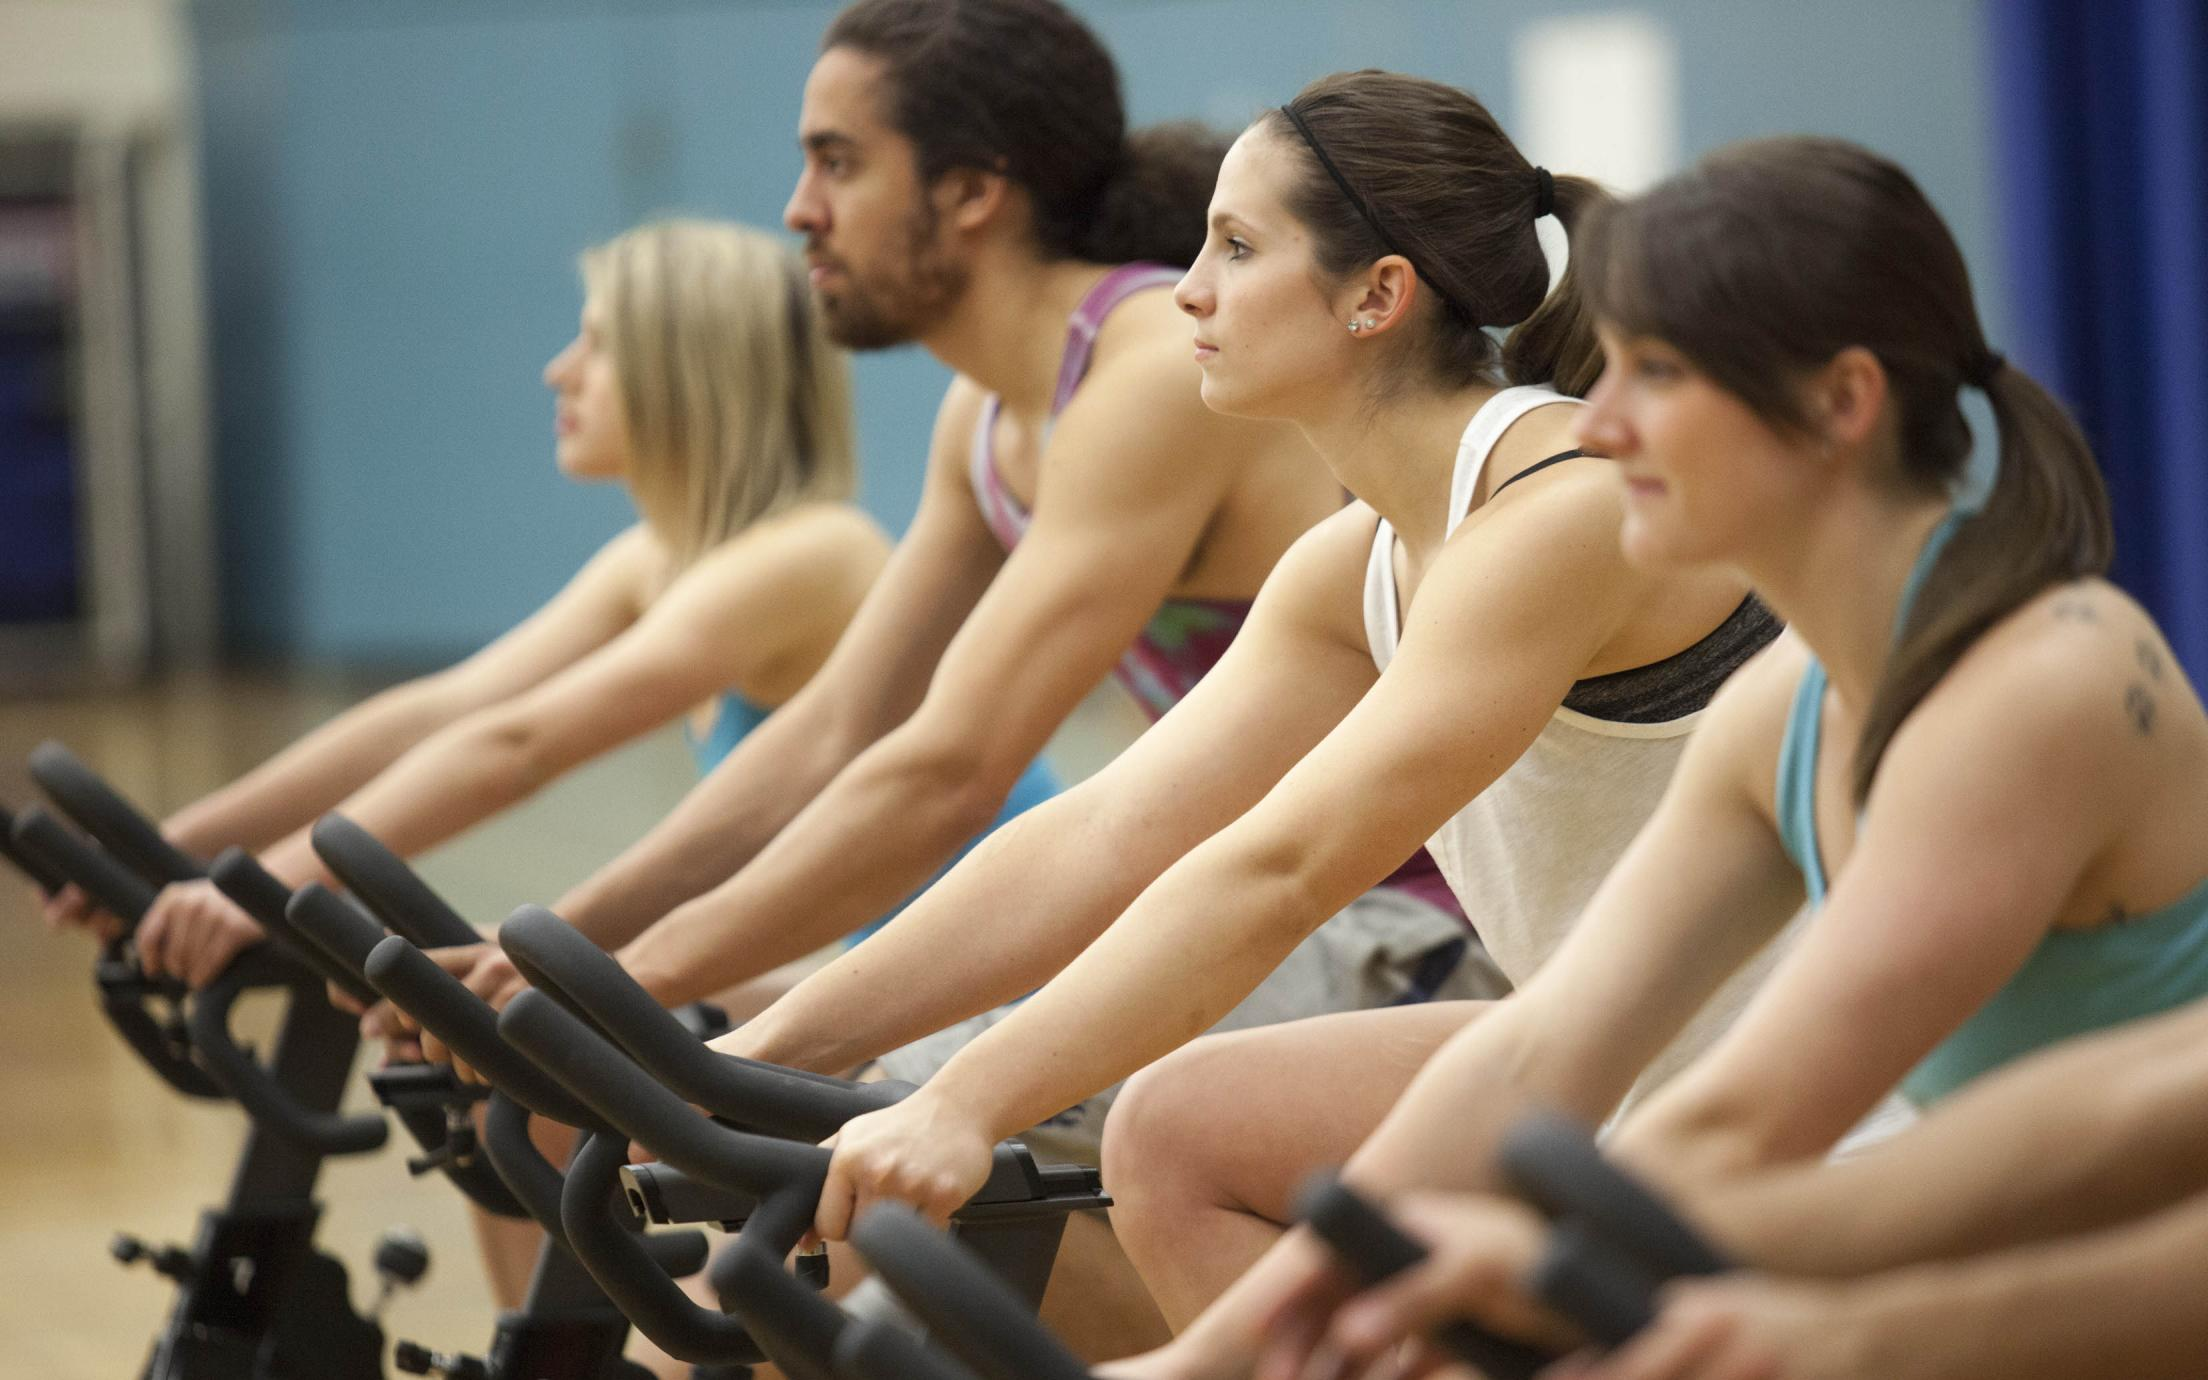 VIU's bachelor of physical education degree program students participating in an indoor cycling class